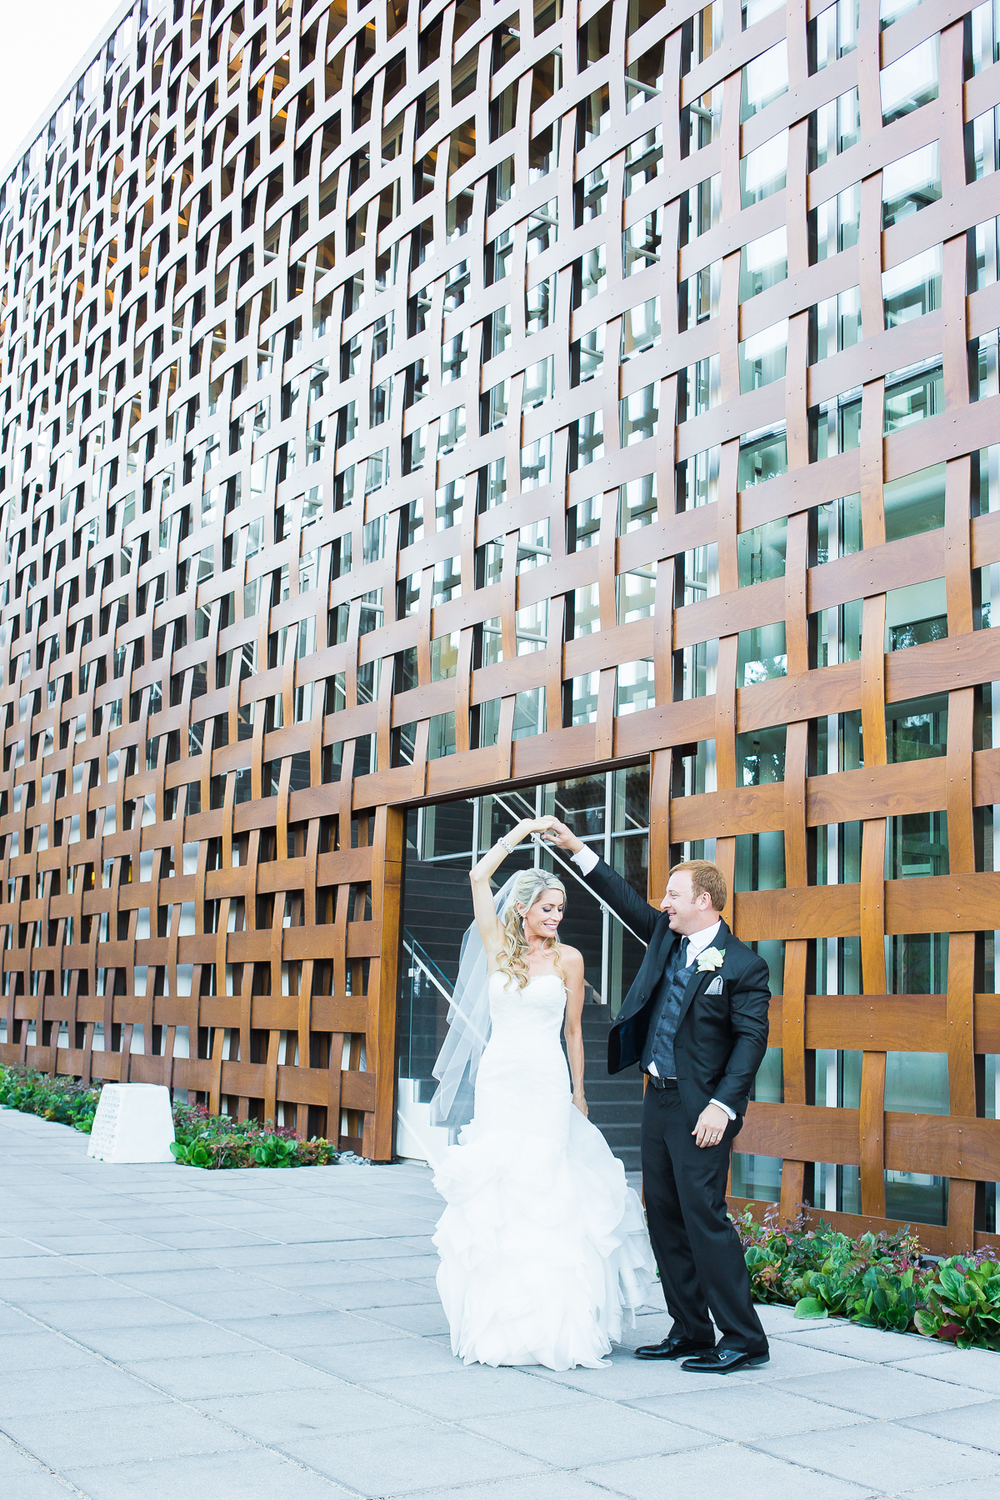 Aspen Art Museum Wedding | Wedding Dress from Little White Dress in Denver | Amy Bluestar Photography